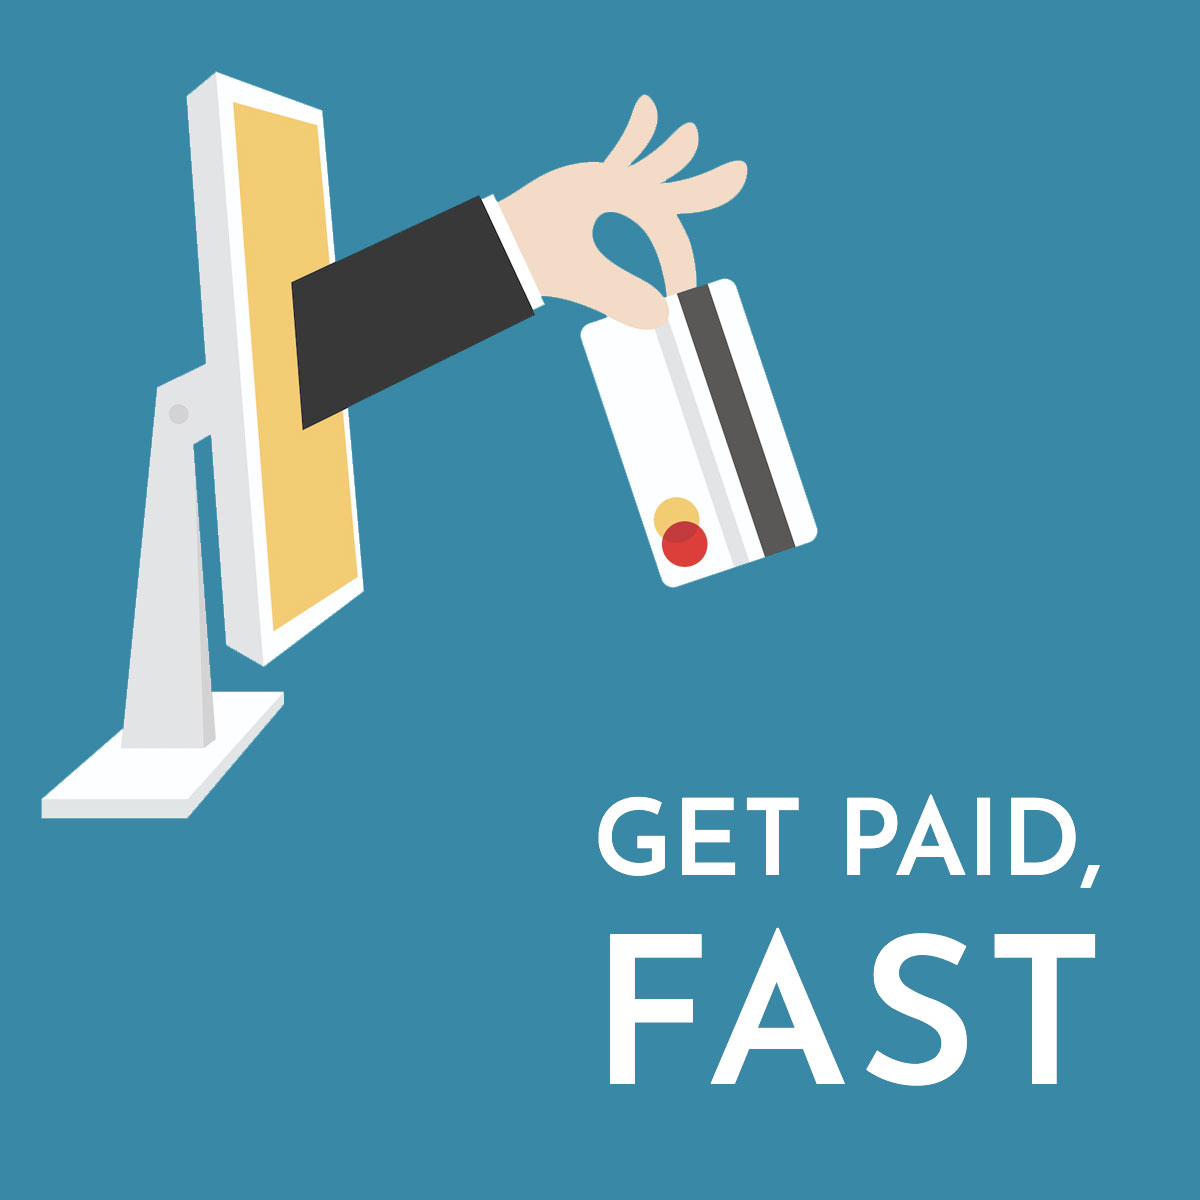 4 steps for food & beverage businesses to get paid fast - featured image